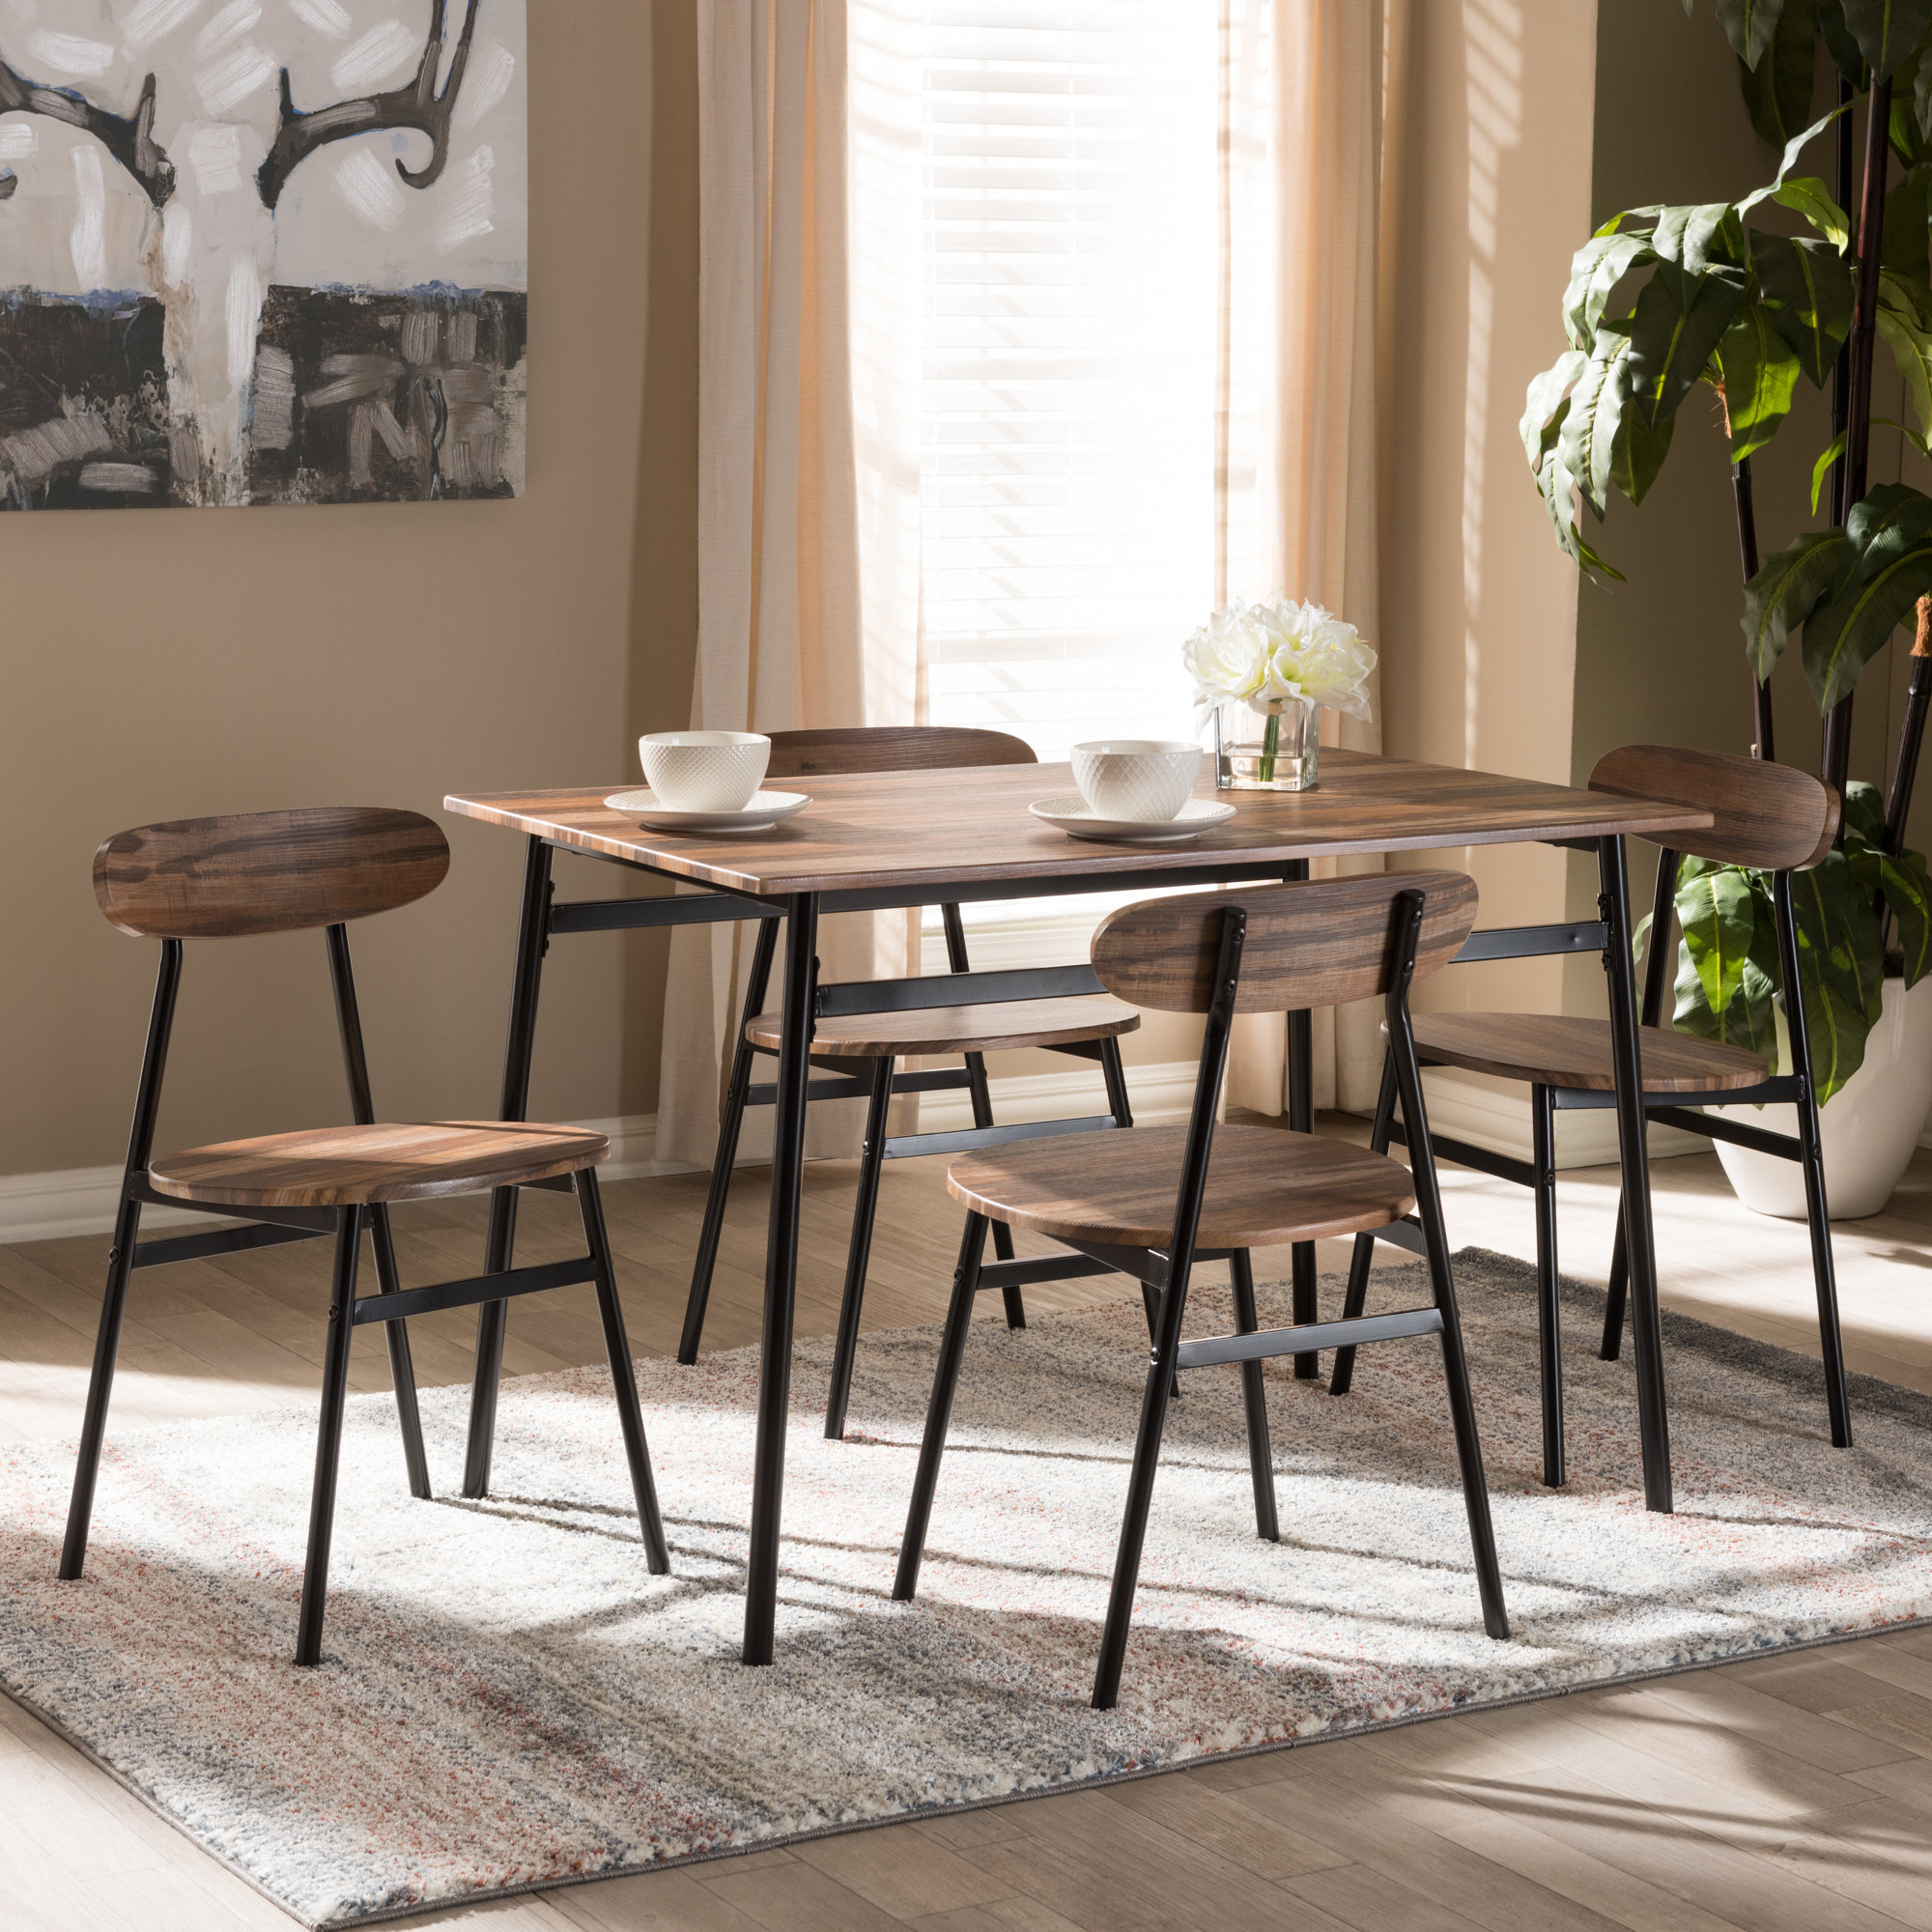 Well Known Details About Union Rustic Telauges 5 Piece Dining Set Regarding Telauges 5 Piece Dining Sets (View 3 of 20)